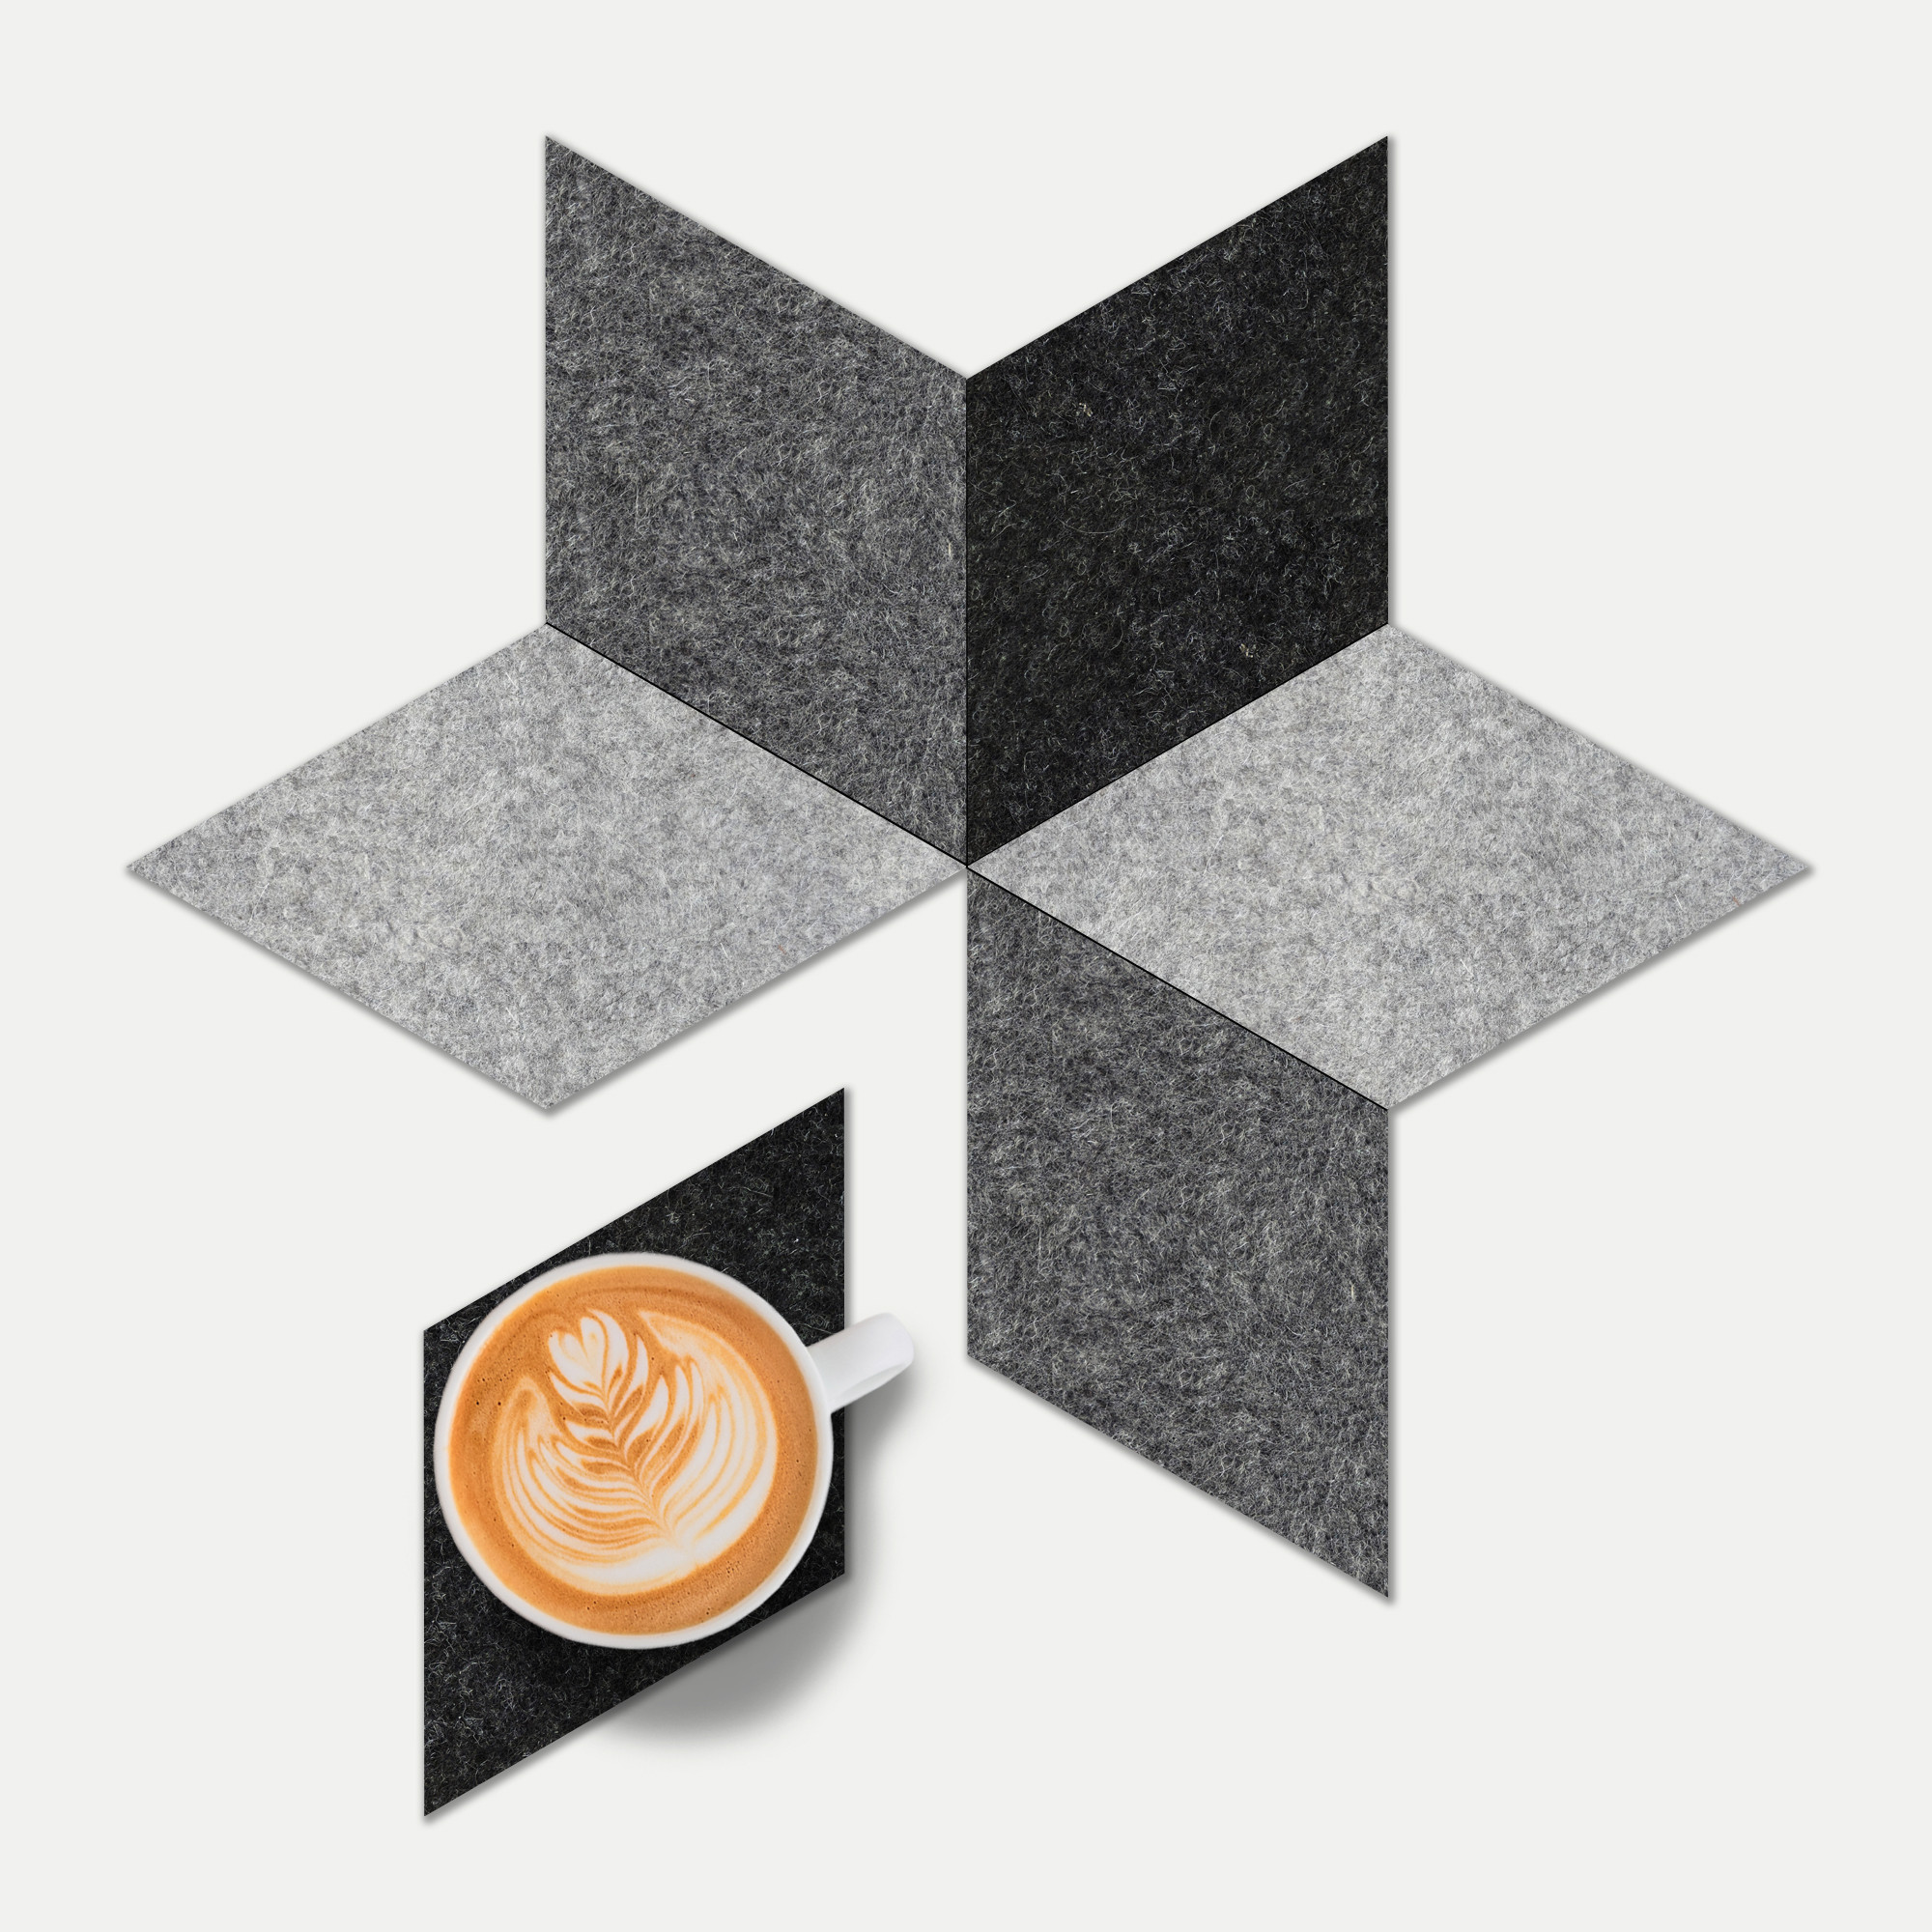 6 Of The Coolest Drink Coasters Liv For Interiors